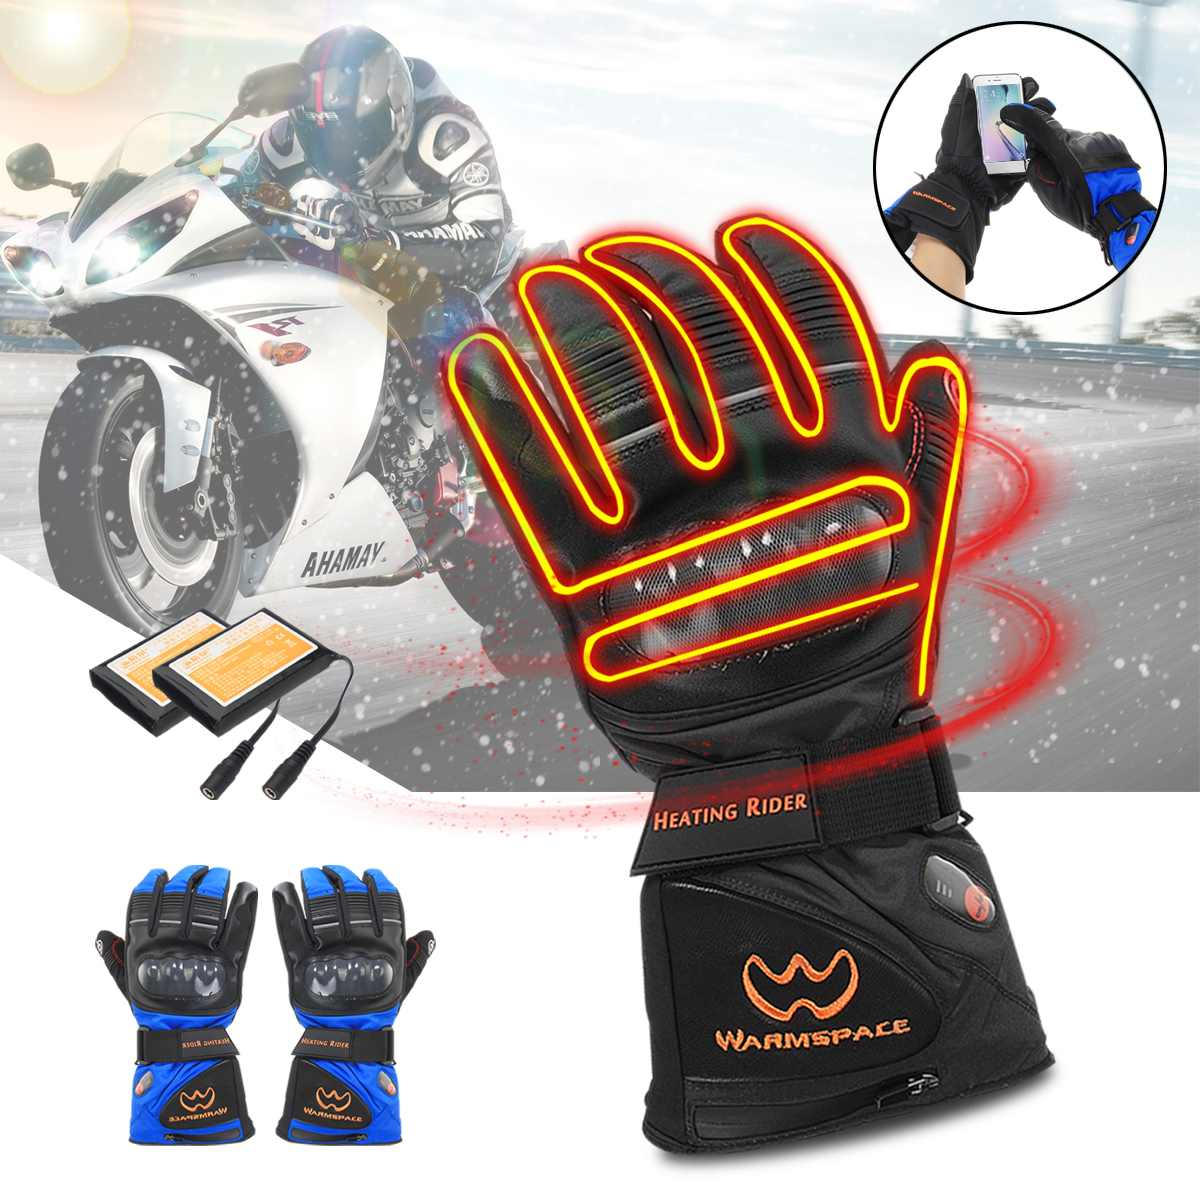 5600mah 7.4V Rechargeable Electric Gloves Heated Li Battery For Motorcycle Riding Snowboarding Skiing with 2 Battery